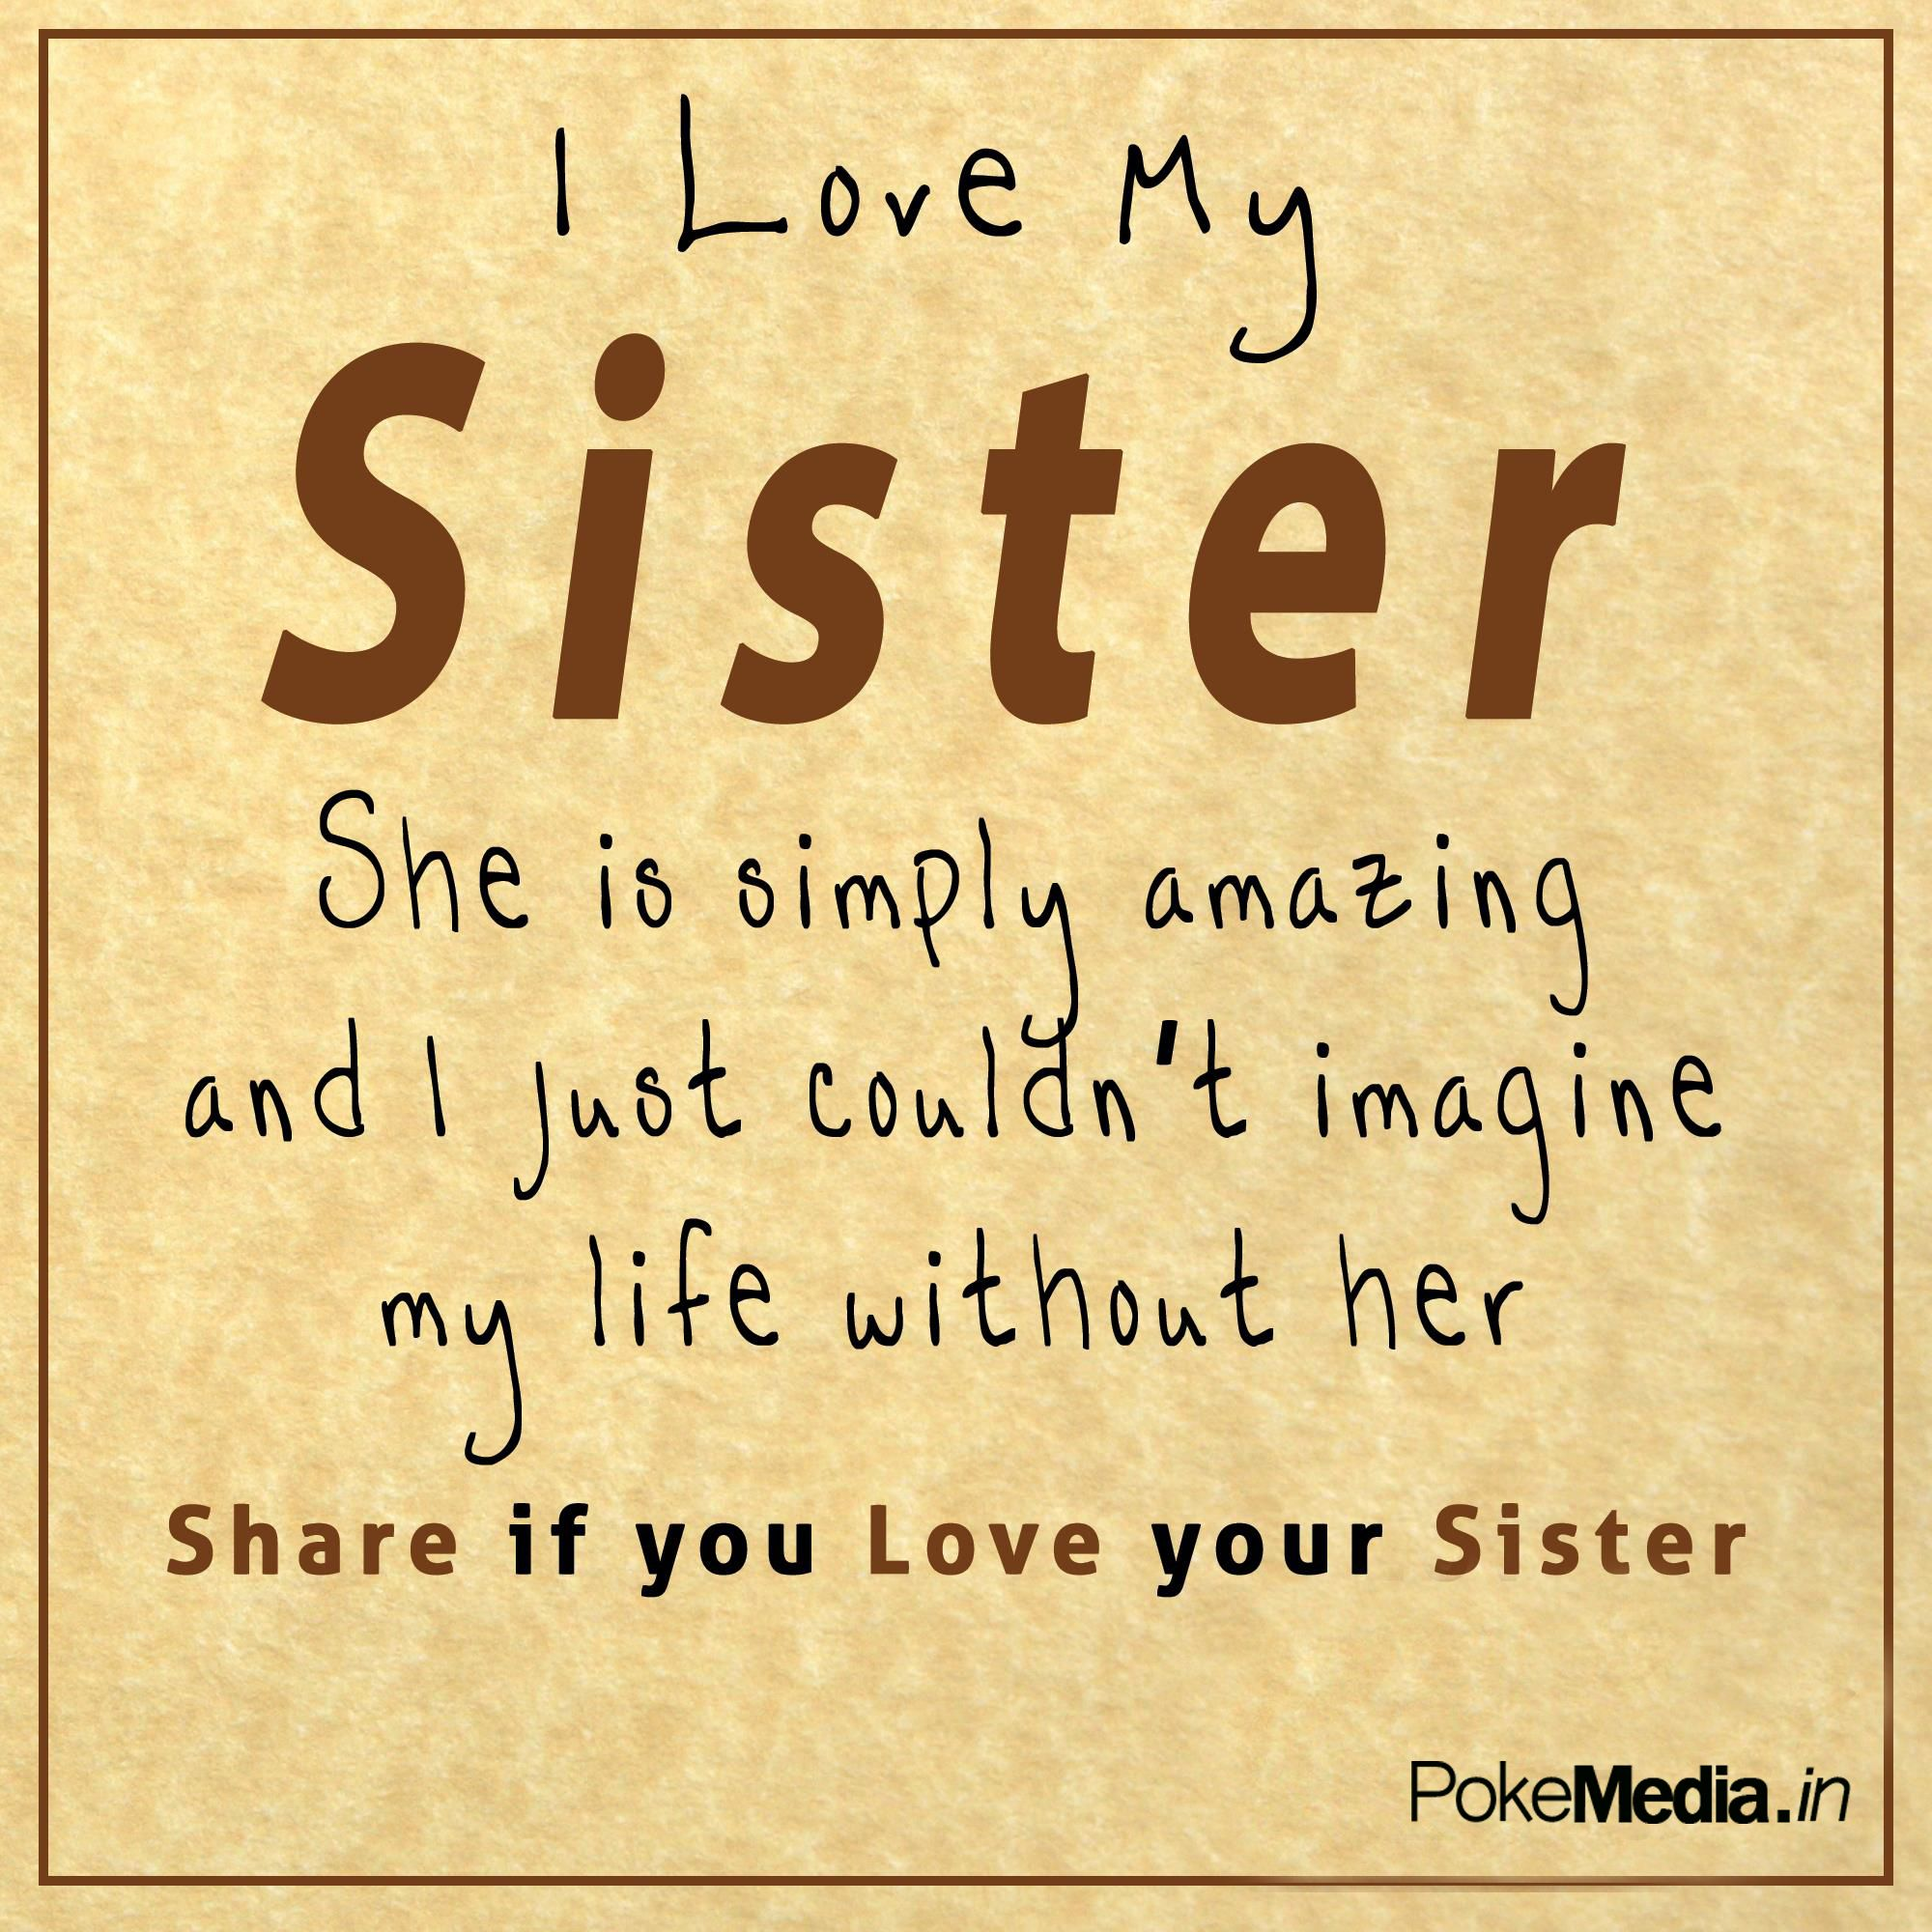 Poke Media Love My Sister Sister Quotes Sister Quotes Funny